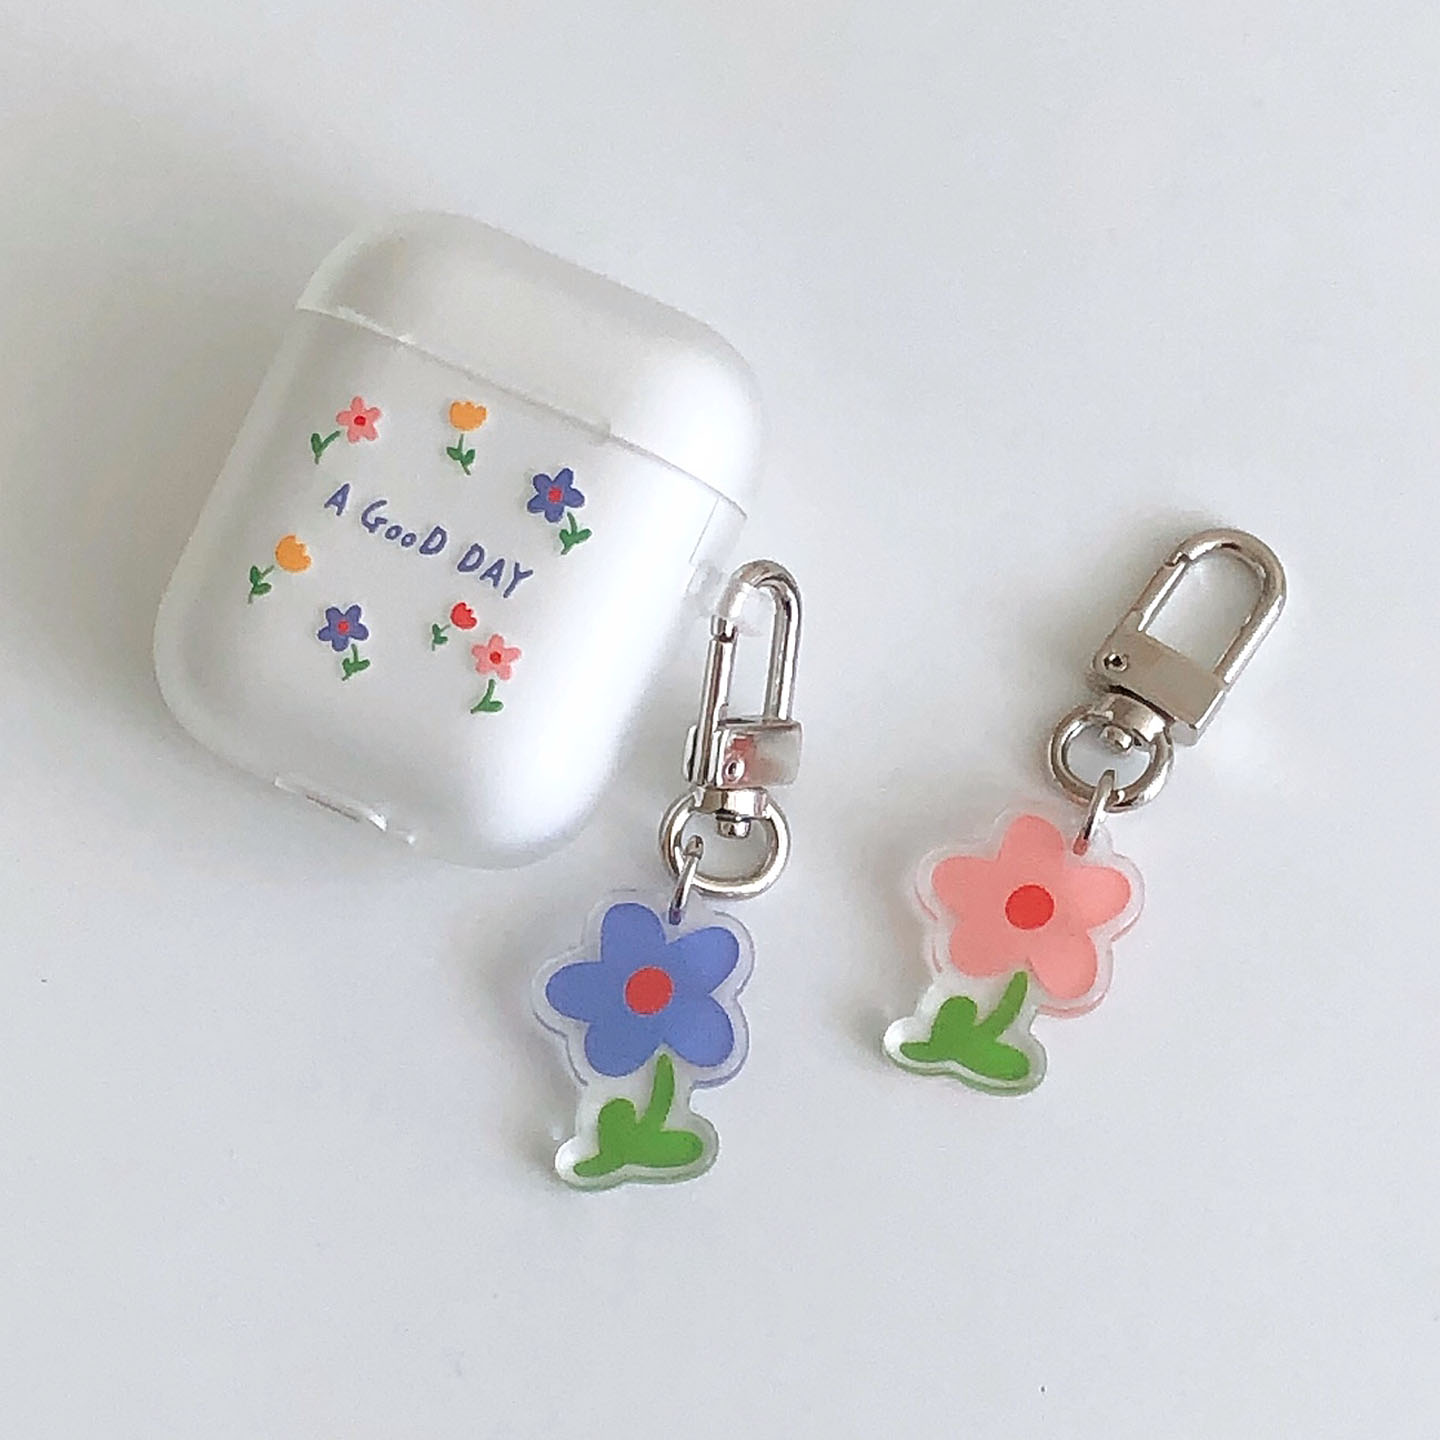 A good day key ring (아크릴)